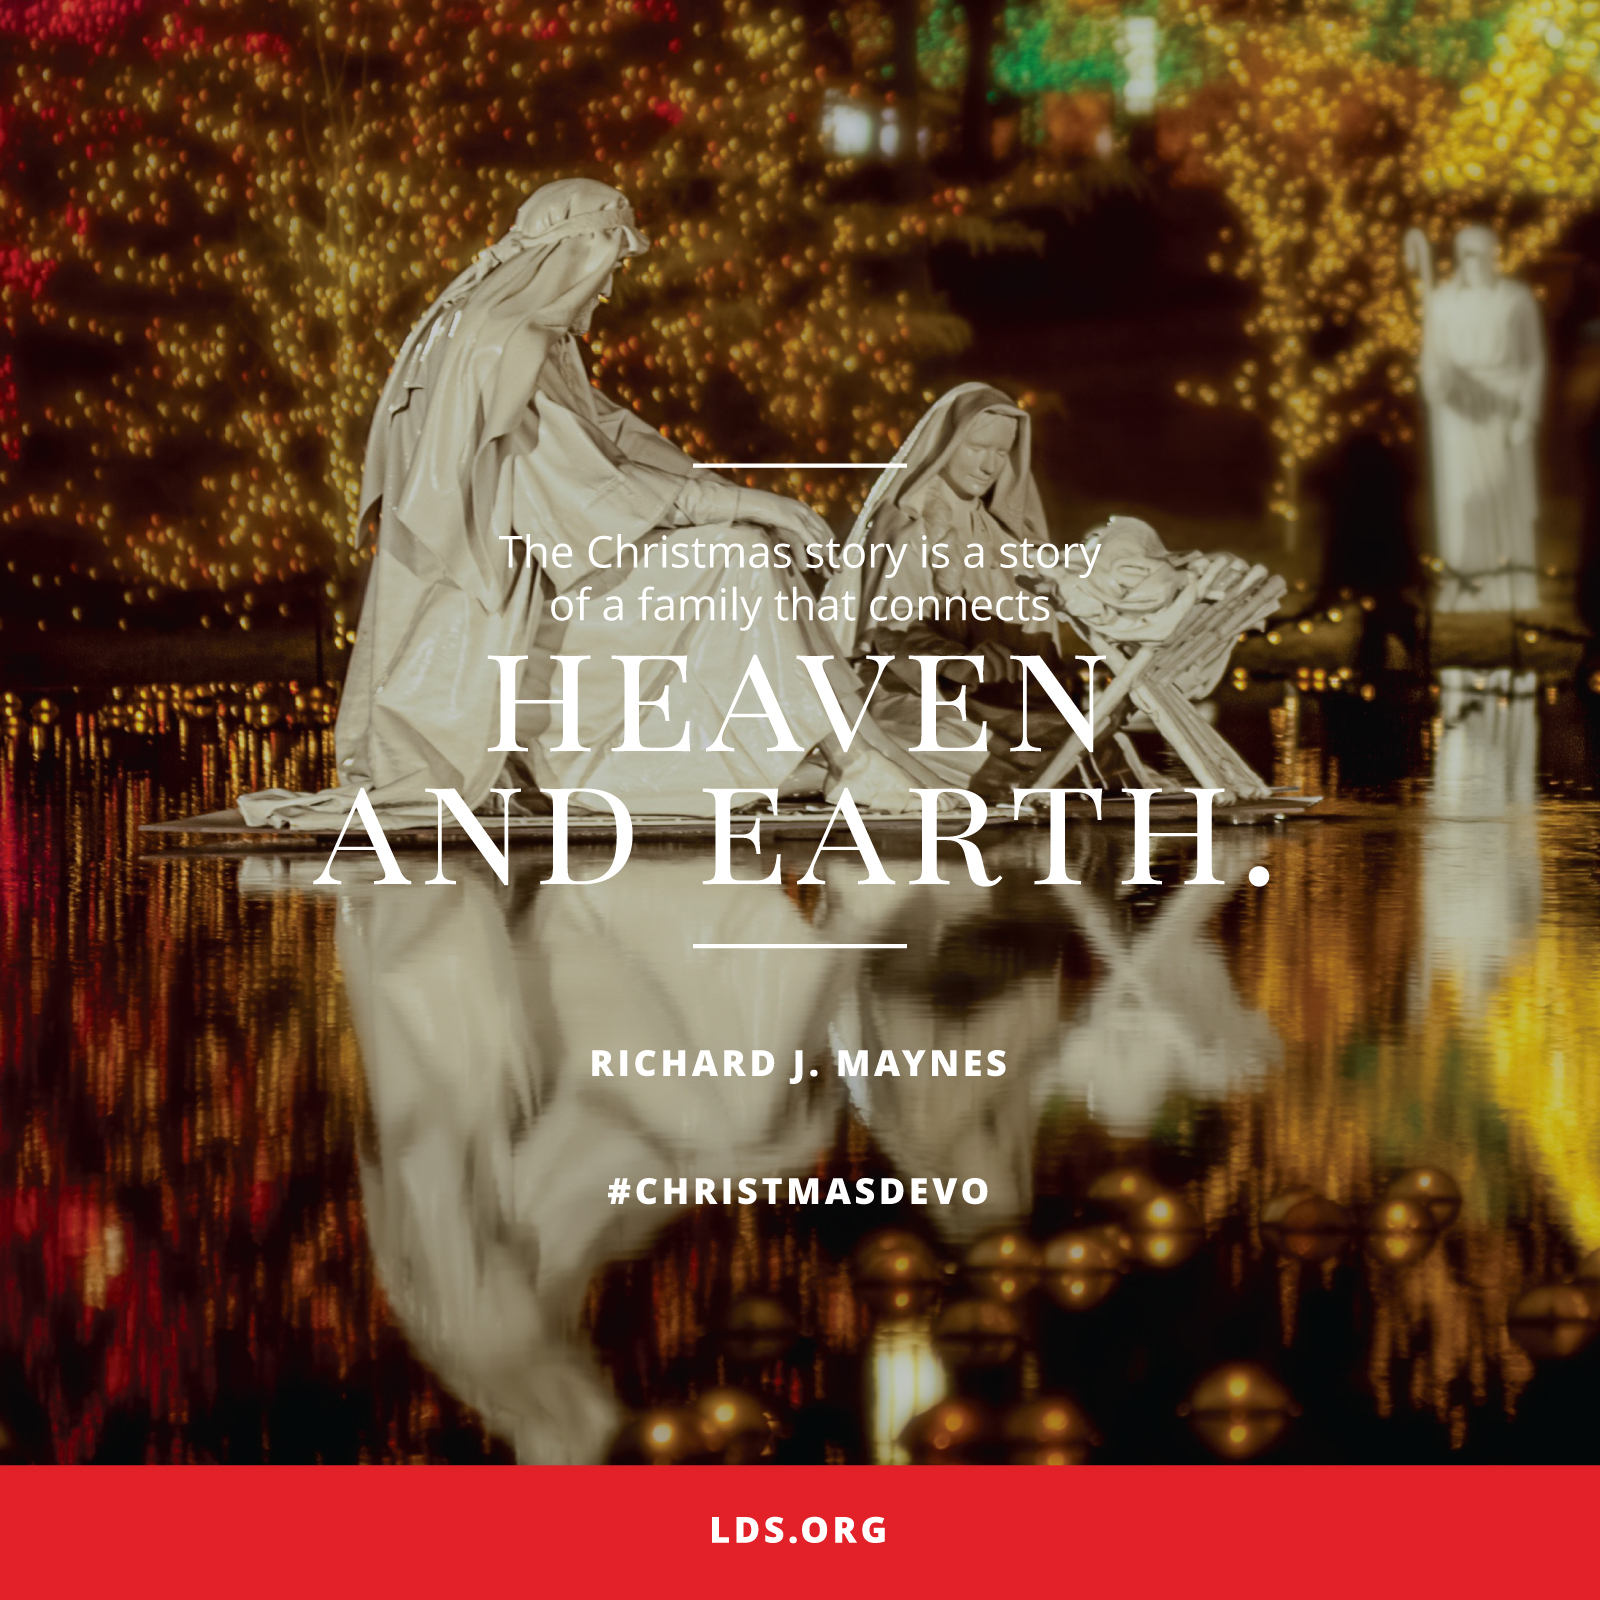 109 Best Christmas Lds Images On Pinterest: Heaven And Earth